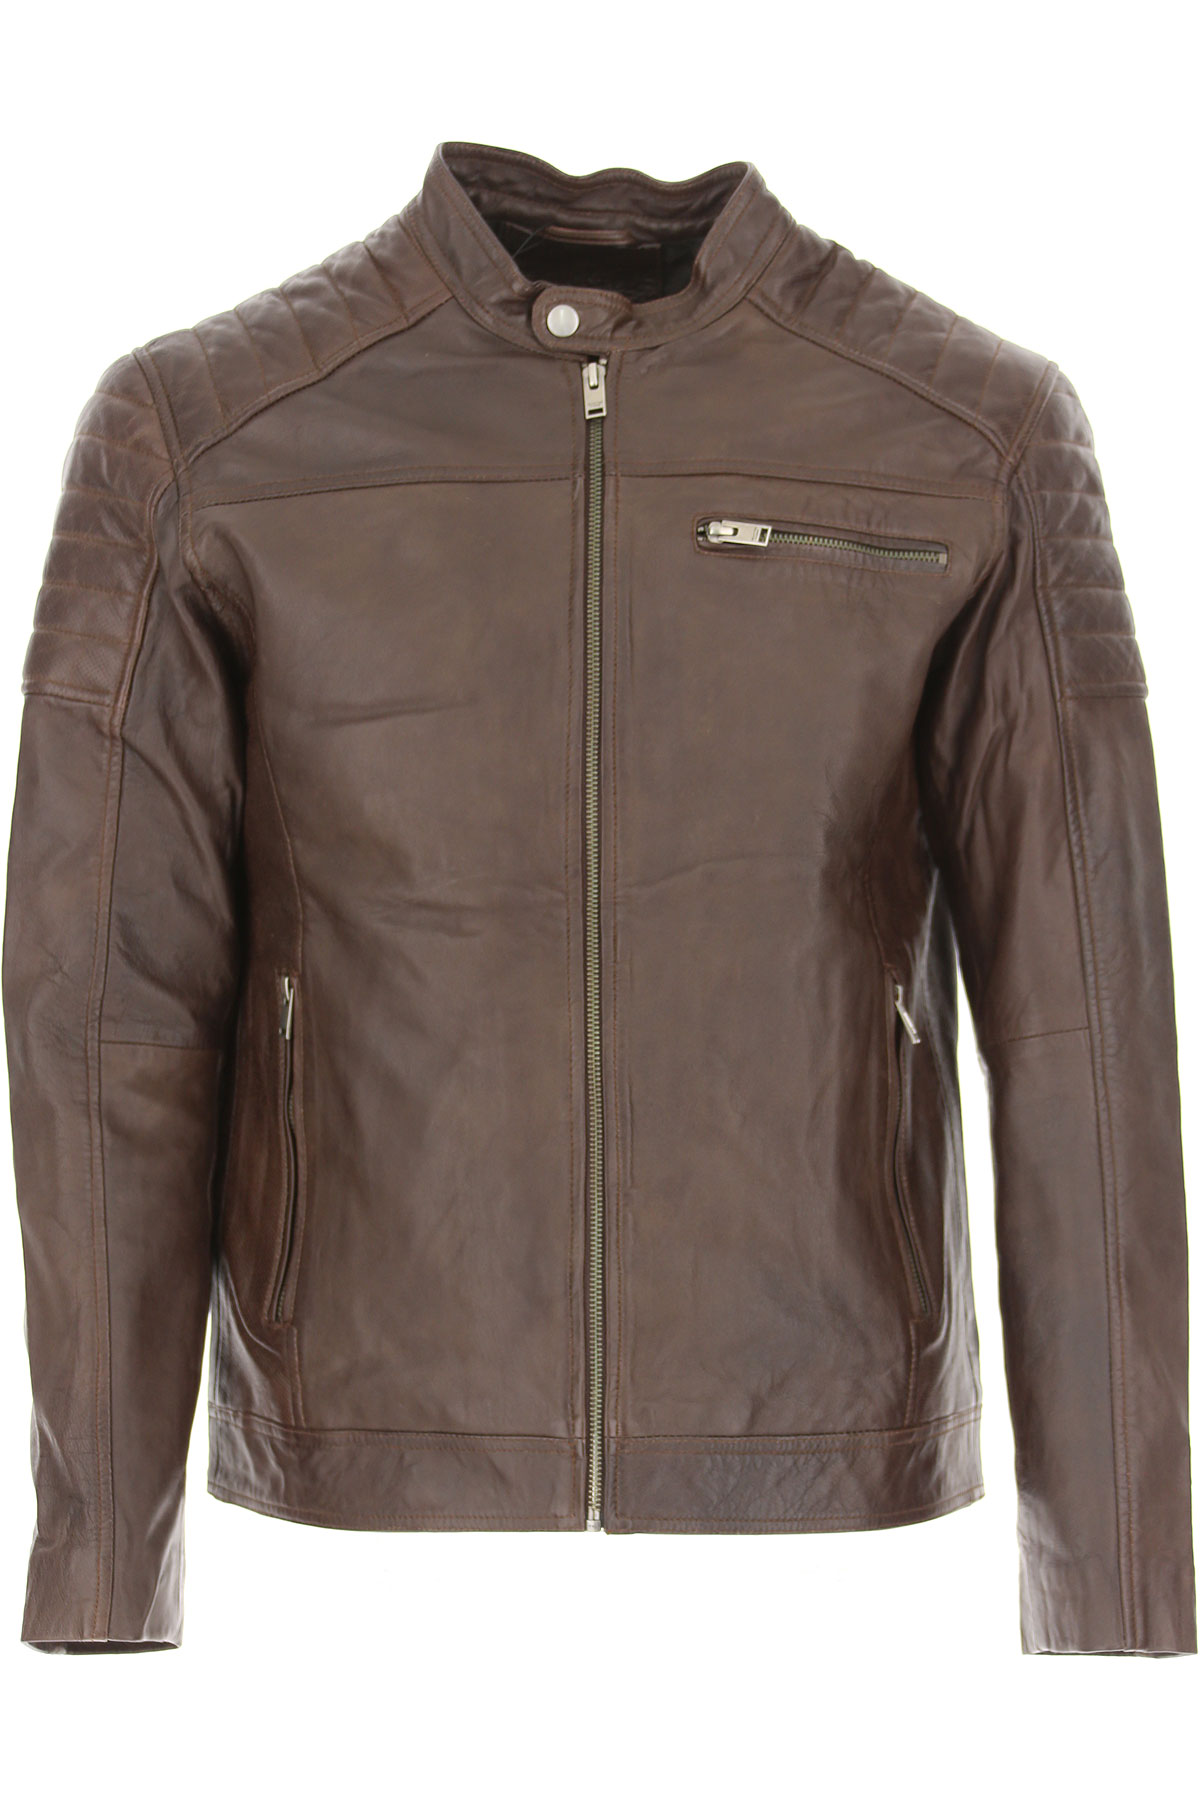 Image of Selected Leather Jacket for Men, Chocolate Brown, Leather, 2017, L M